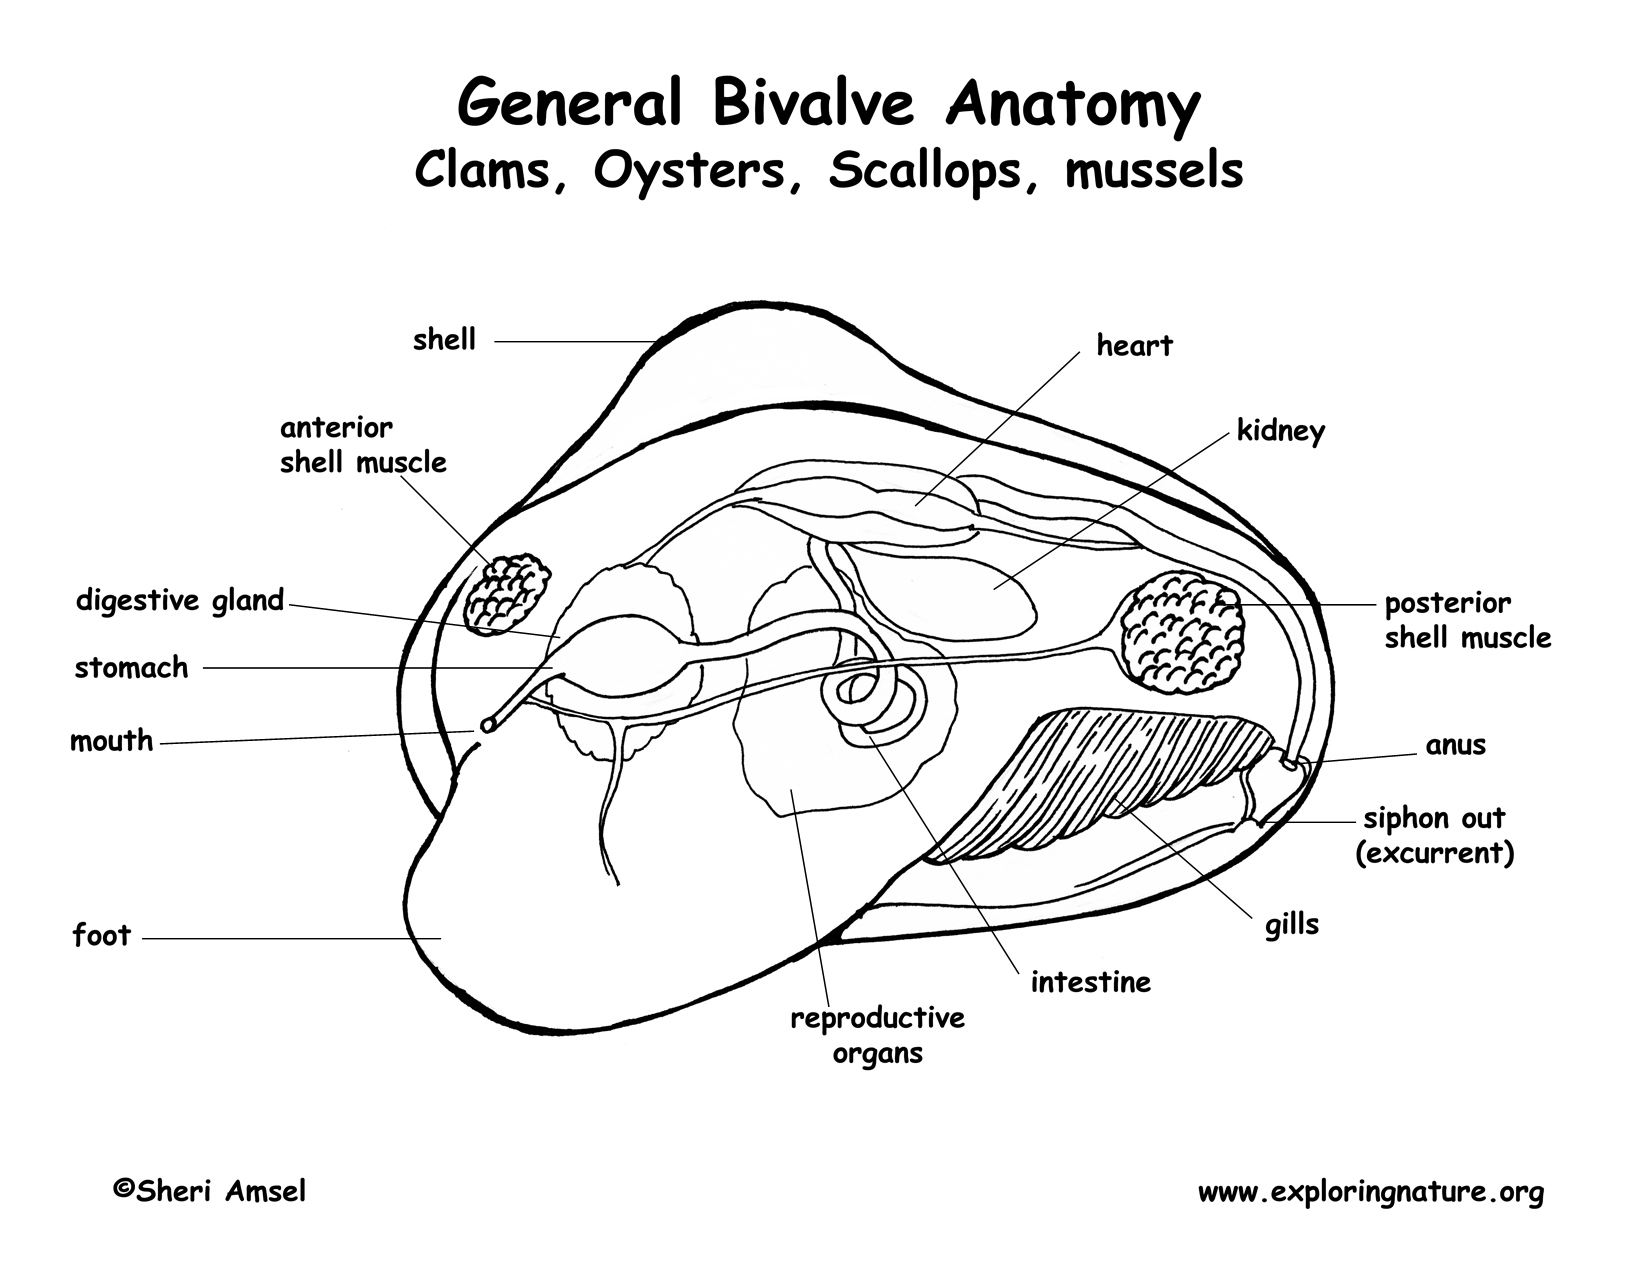 Bivalve Clam Diagram Anatomy General - Electrical Work Wiring Diagram •